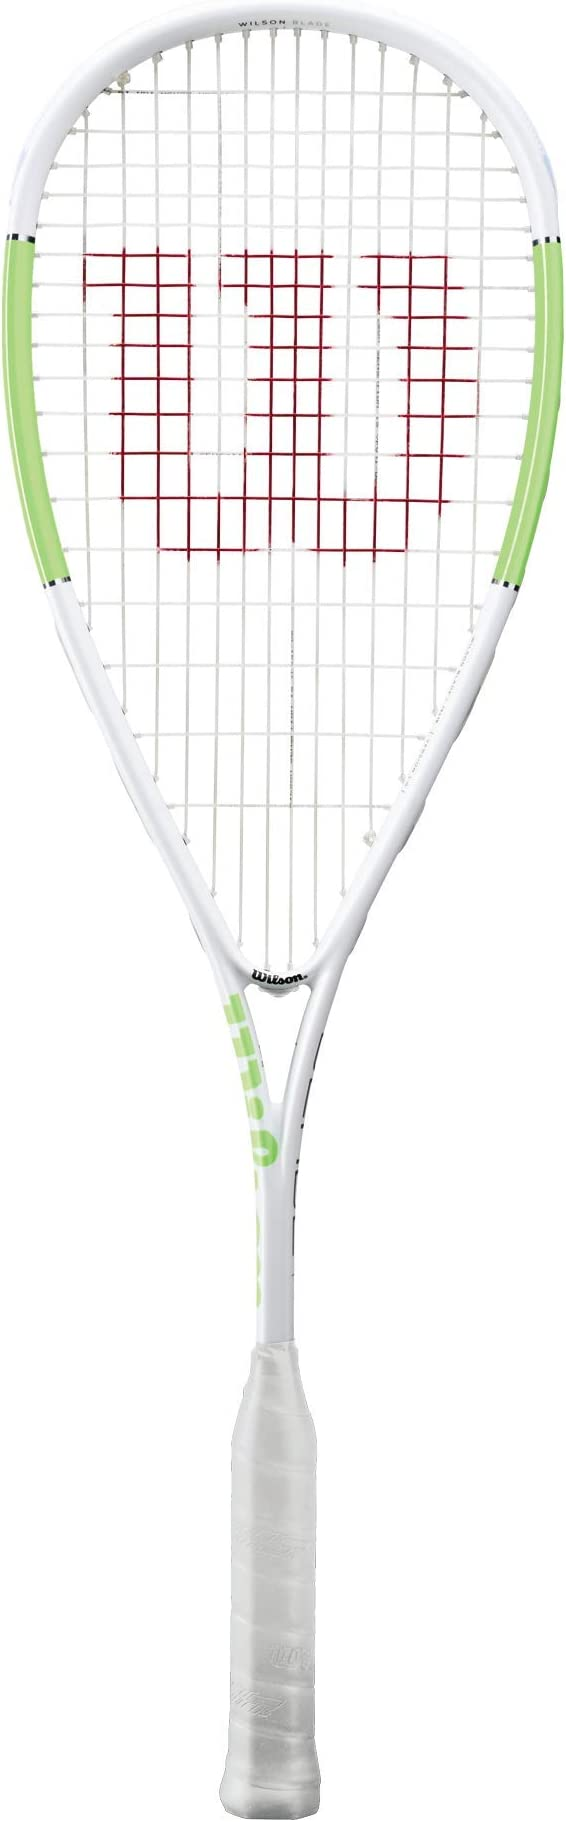 WILSON BLADE COUNTERVAIL SQUASH RACKET 2018 FREE UK 48 HOUR  TRACKED POSTAGE